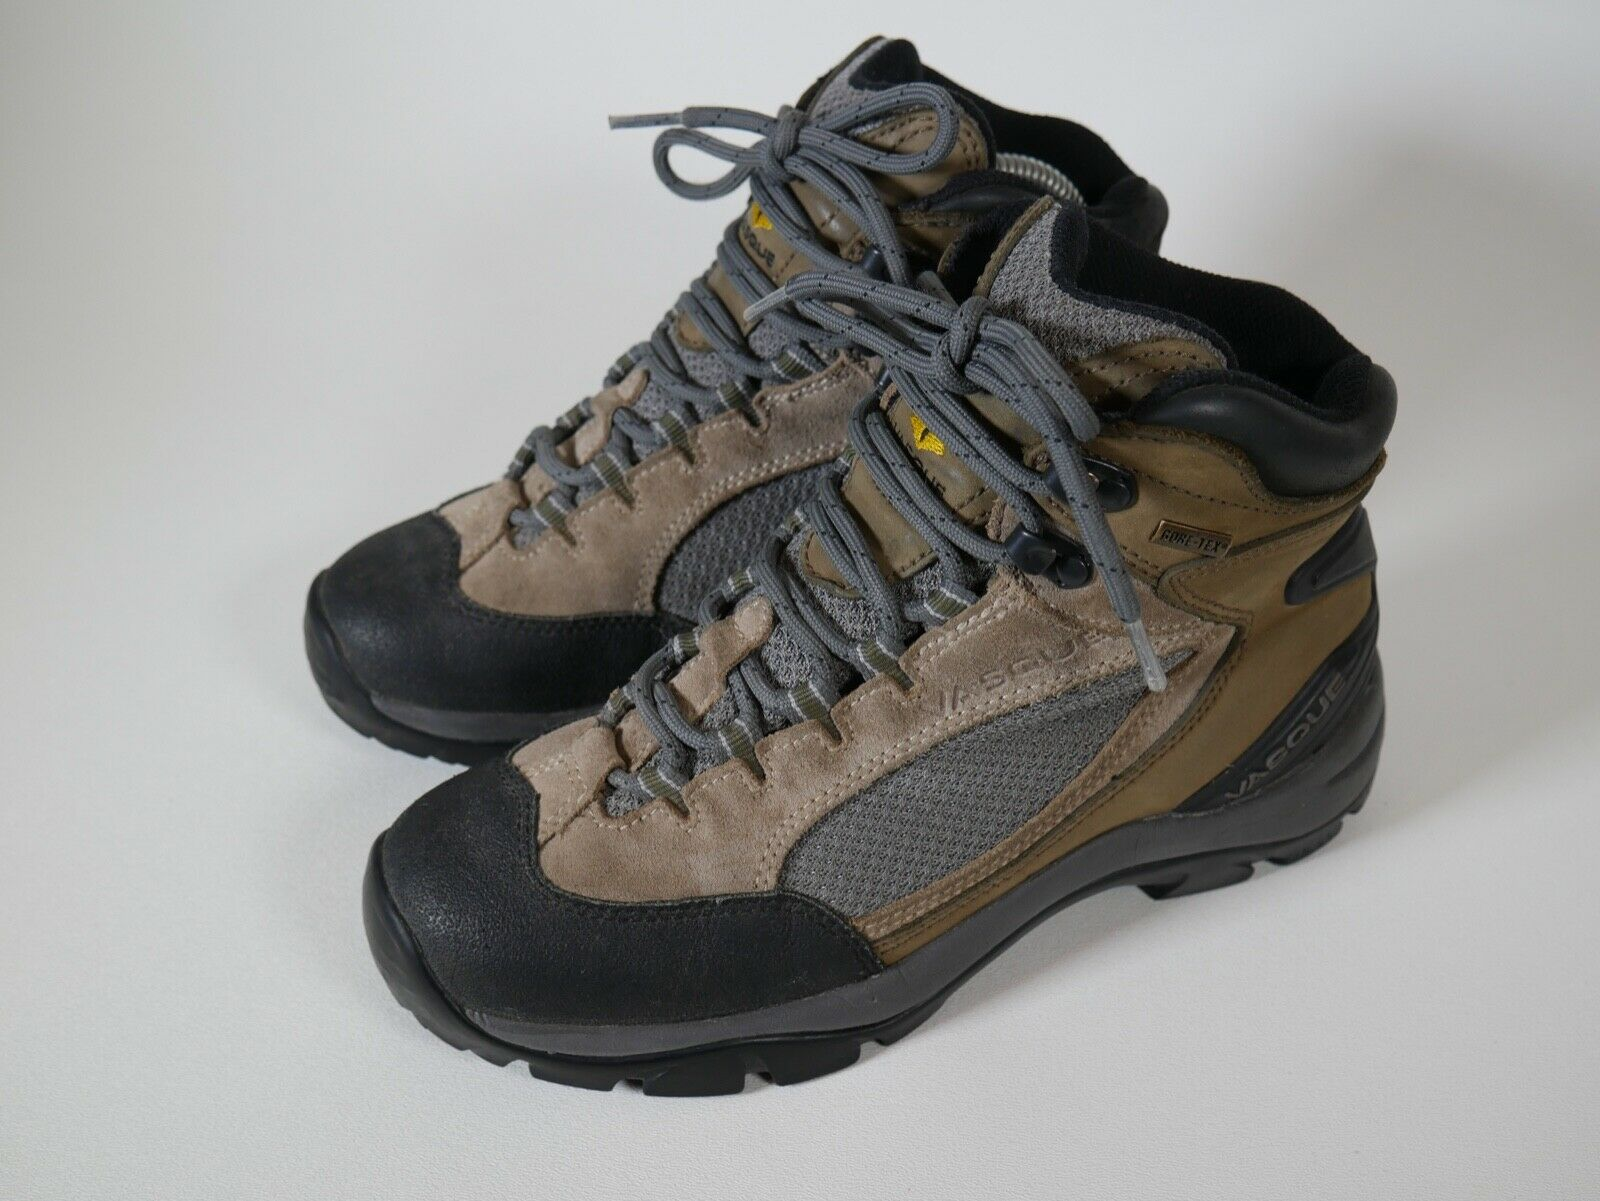 Vasque Gore-Tex Vibram 7433 Ankle Hiking Boots Boots Boots Outdoors Camping Womens Sz 8 US ecc23d